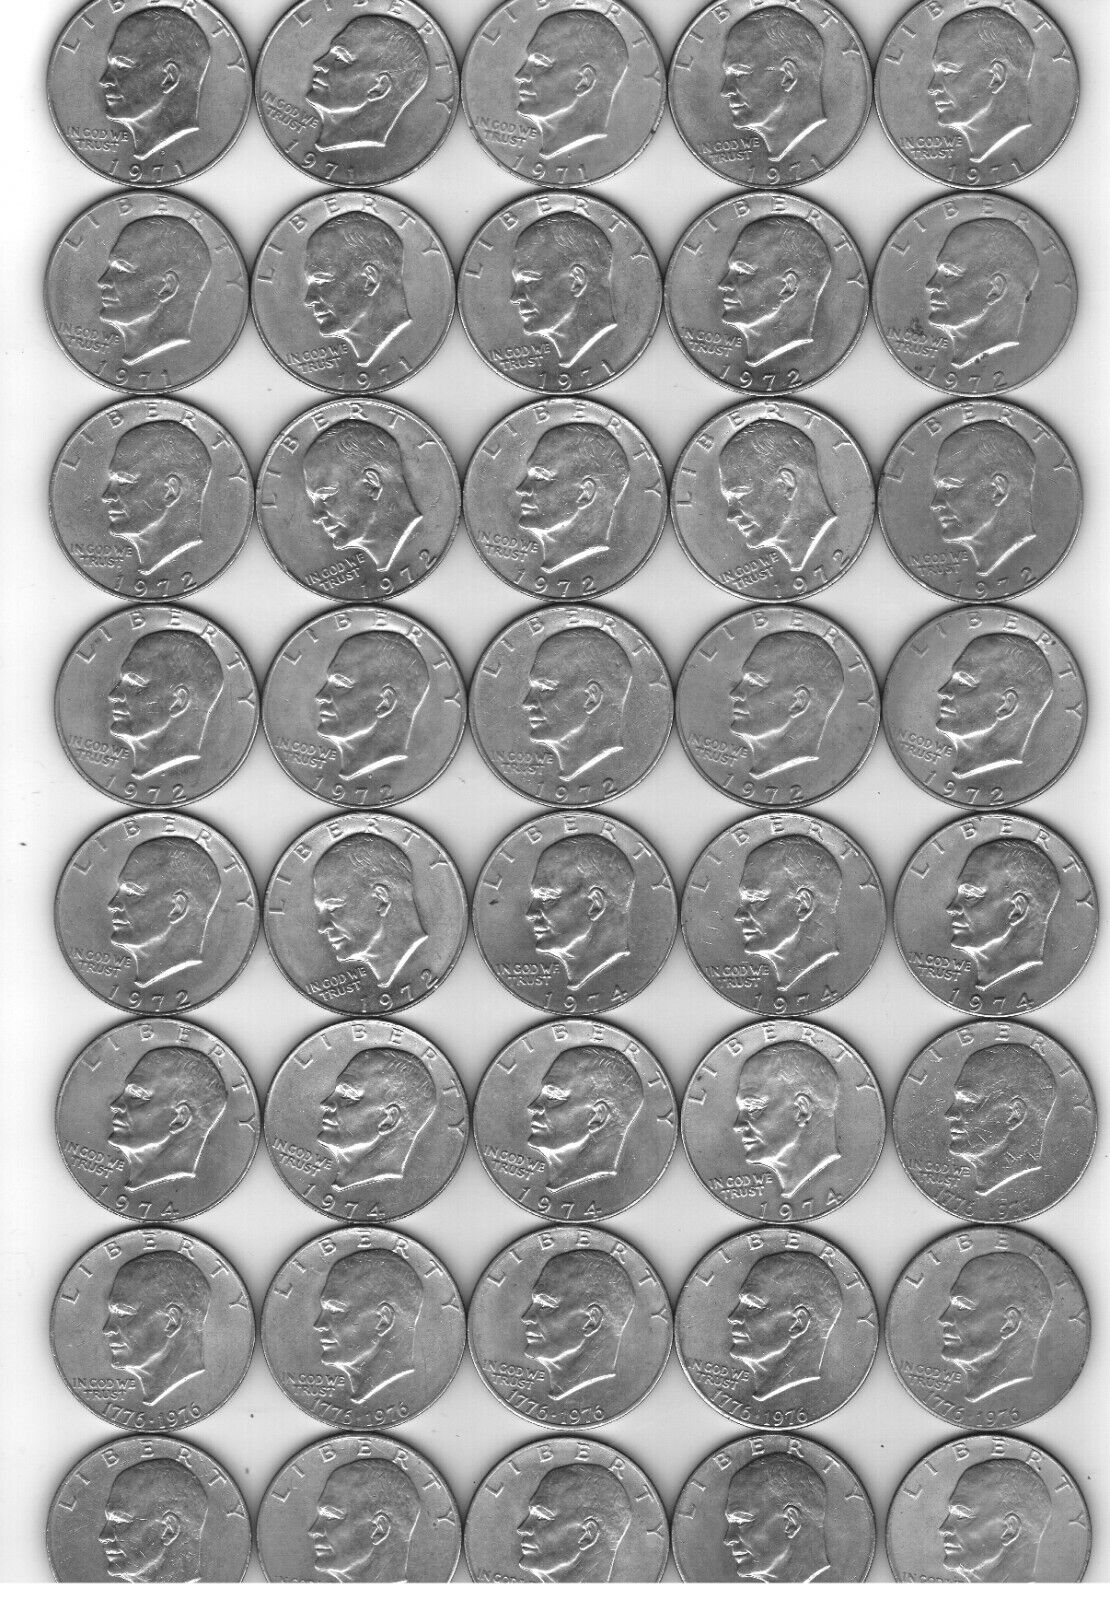 Lot Of 40 1971-1976 IKE Eisenhower Dollars NOT SILVER Fine To XF COND - $87.00